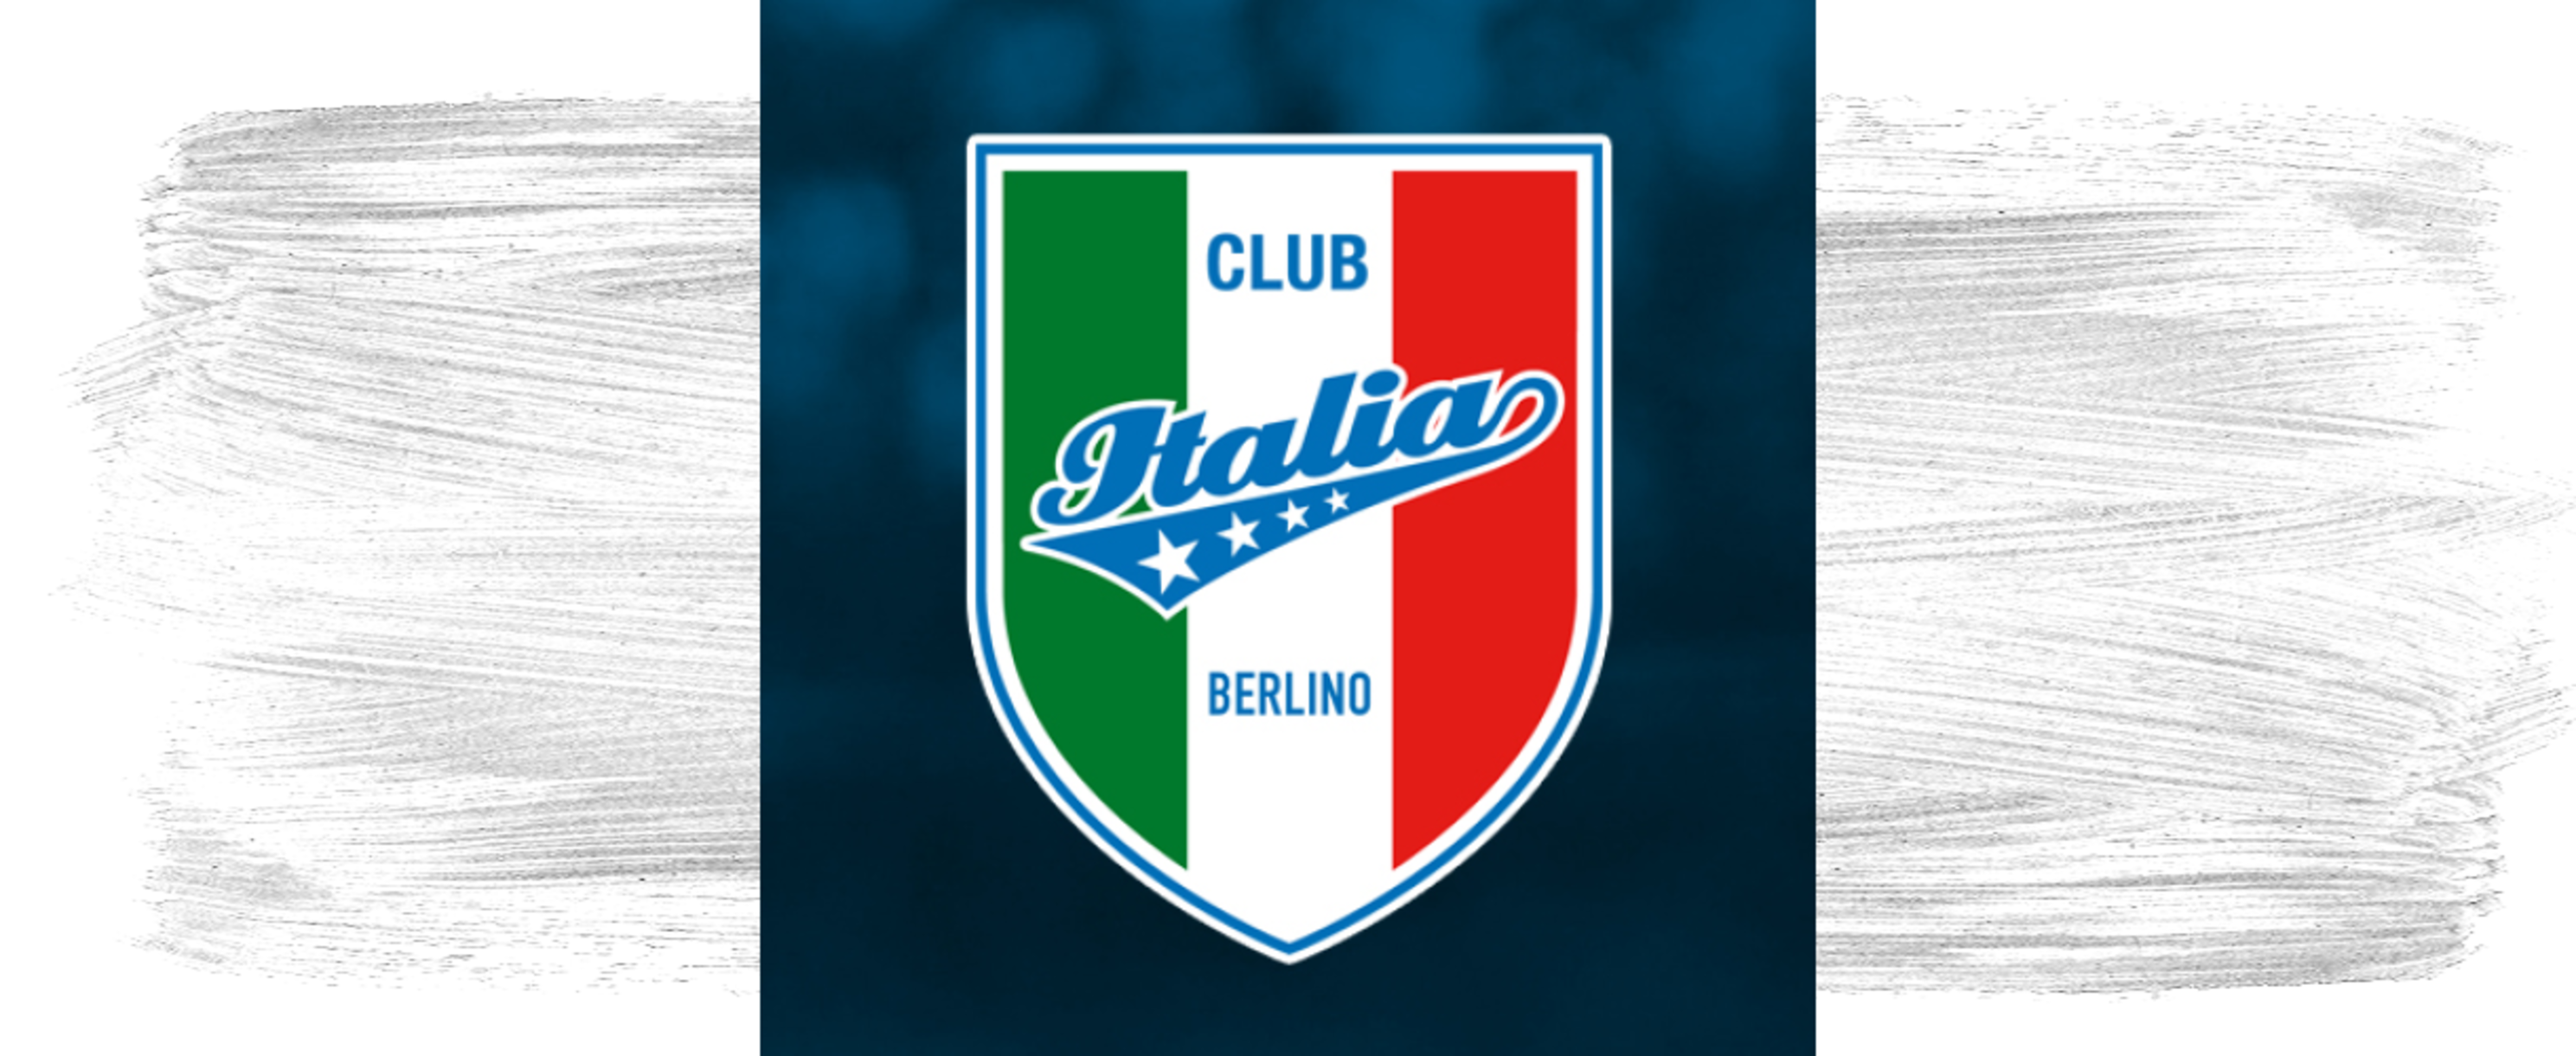 Club Italia 80 e.V. in Berlin